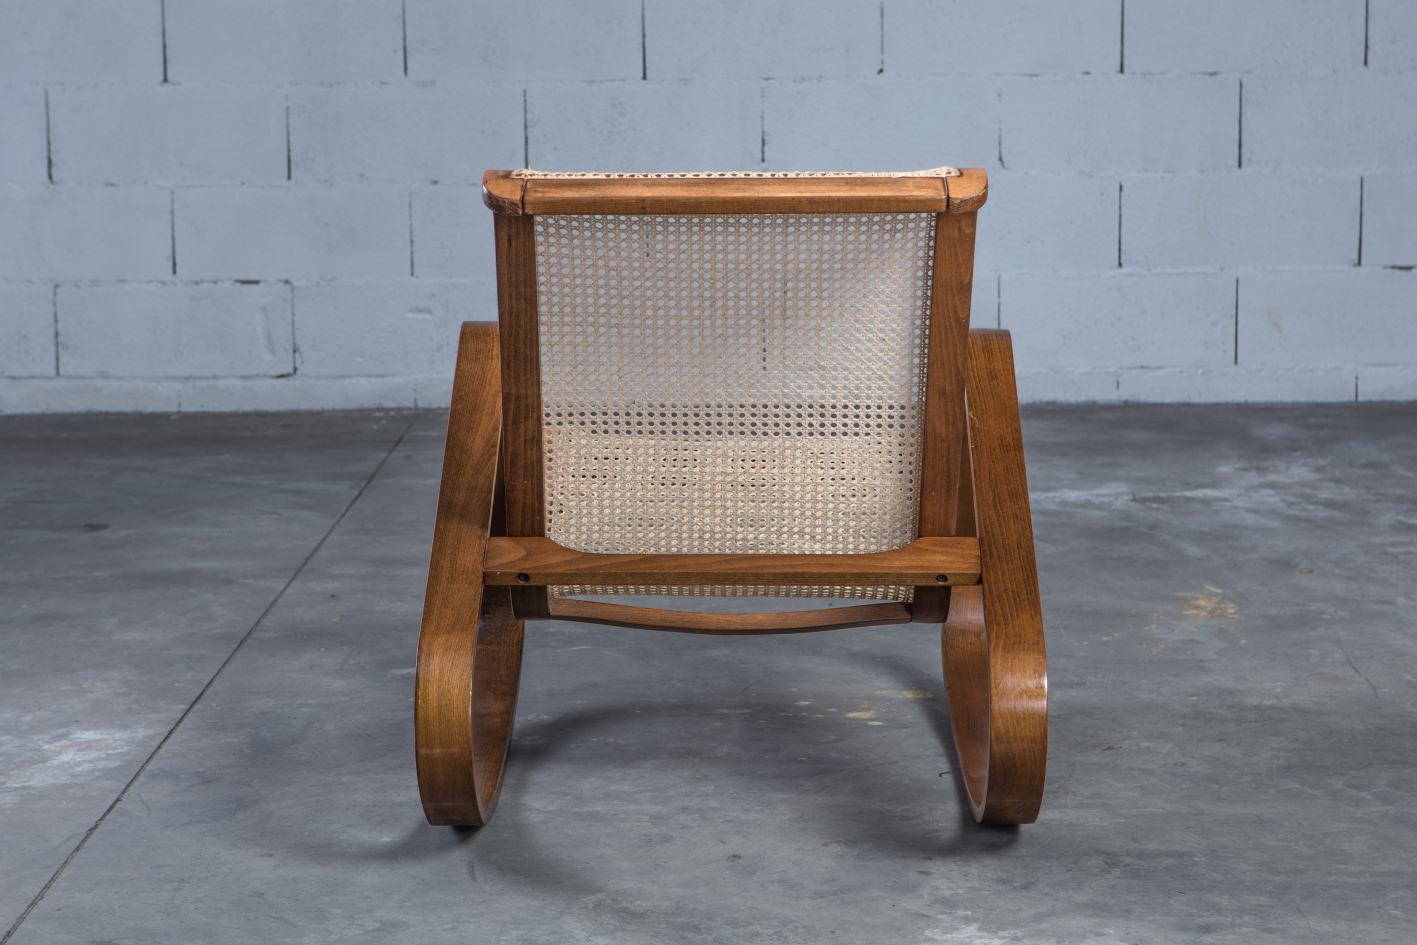 Dondolo rocking chair by Luigi Crassevig 1970s - Back view